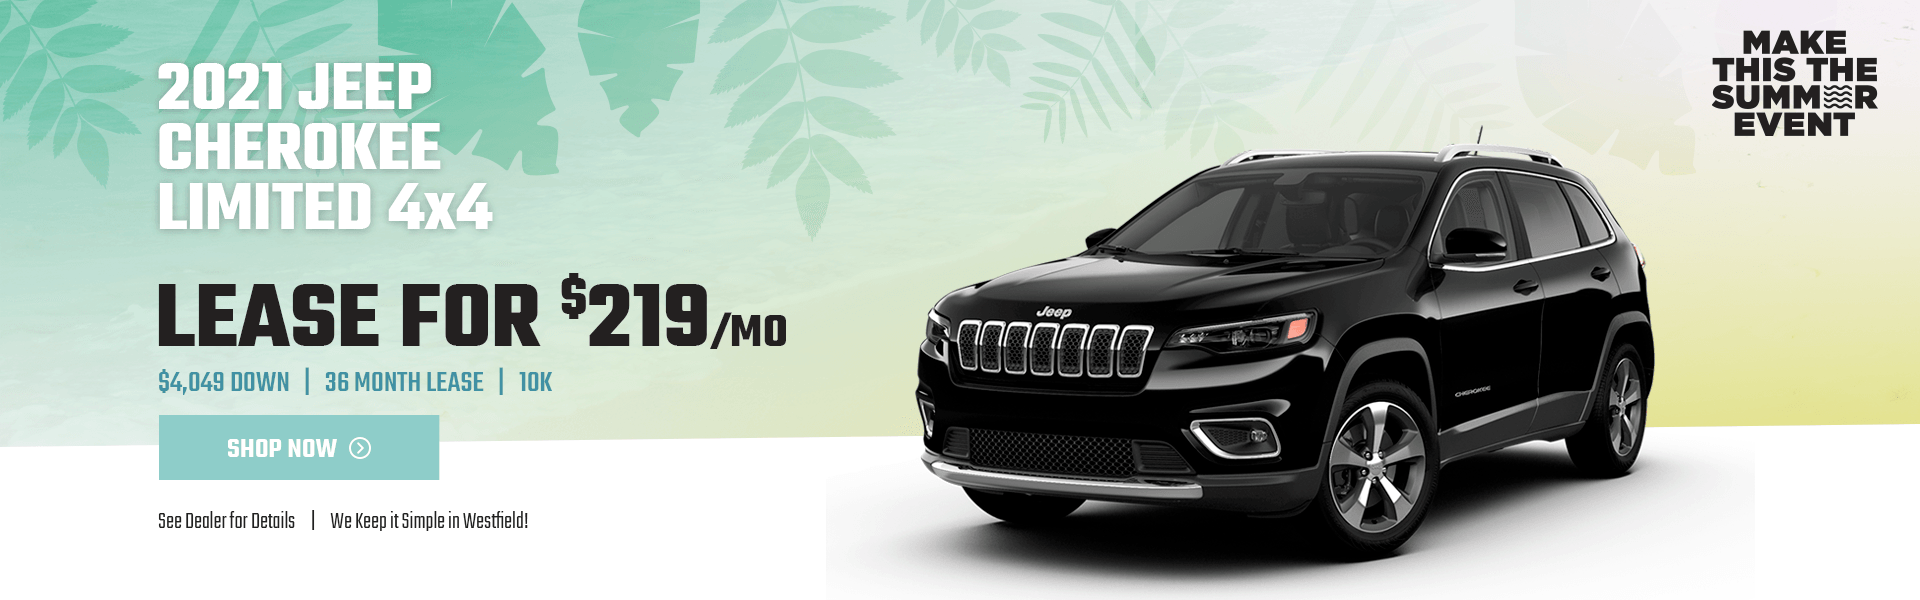 2021 JEEP CHEROKEE LIMITED JULY 21_2